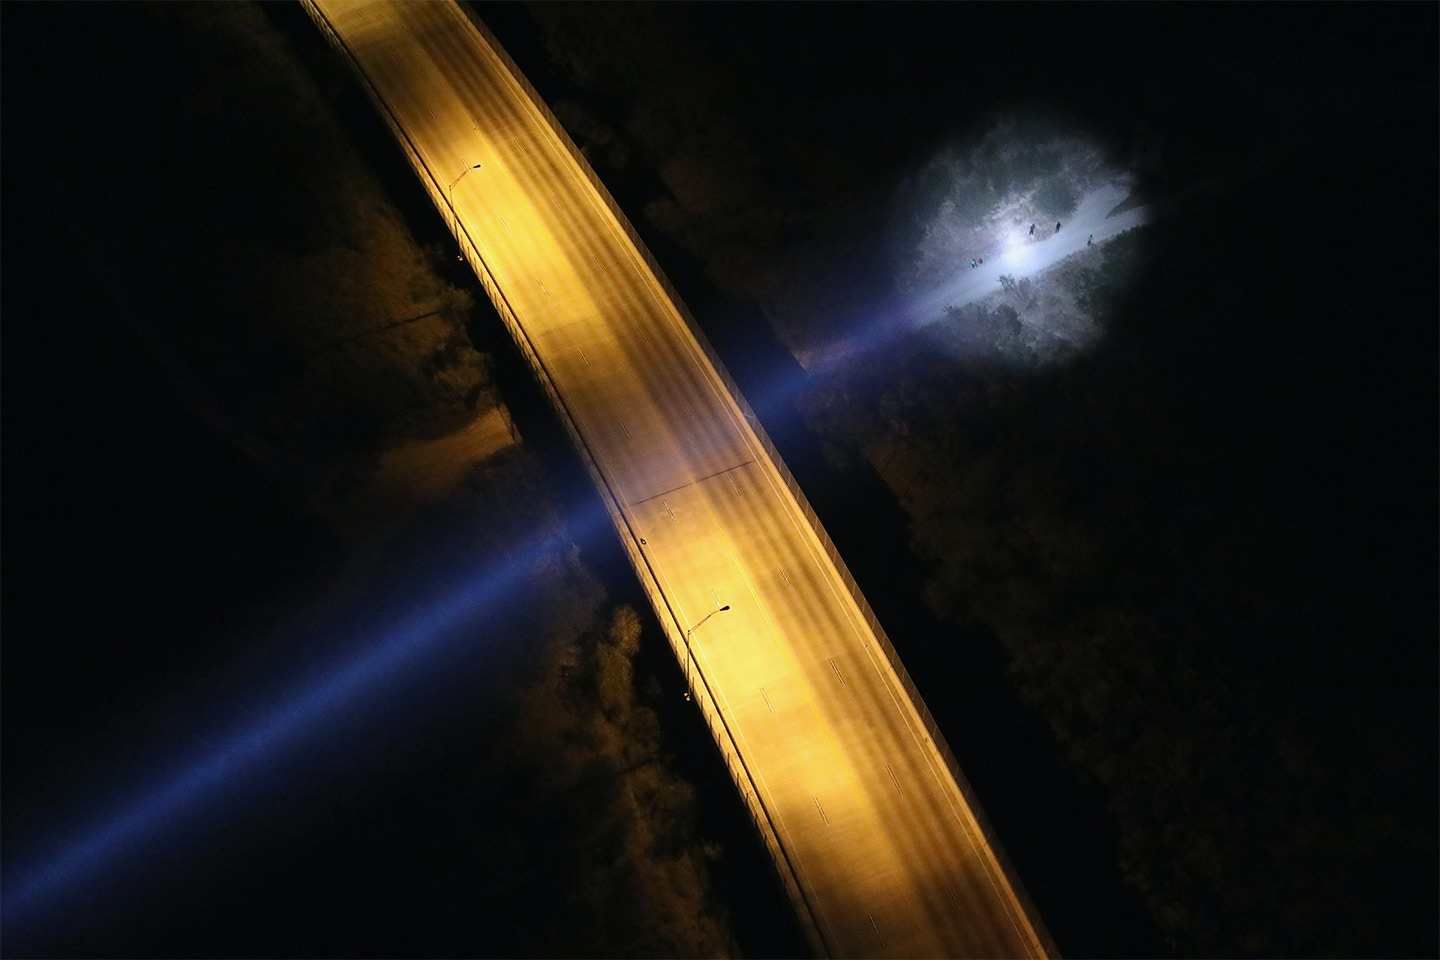 MCALLEN, TX - OCTOBER 18:  A spotlight from a U.S. Customs and Border Protection helicopter shines on women and children seeking asylum on October 18, 2016 in McAllen, Texas. U.S. Air and Marine Operations agents fly over border areas, coordinating with Border Patrol agents on the ground to stop undocumented immigrants and drug smugglers from entering the U.S. Immigration and border security have become major issues in the American Presidential campaign.  (Photo by John Moore/Getty Images)